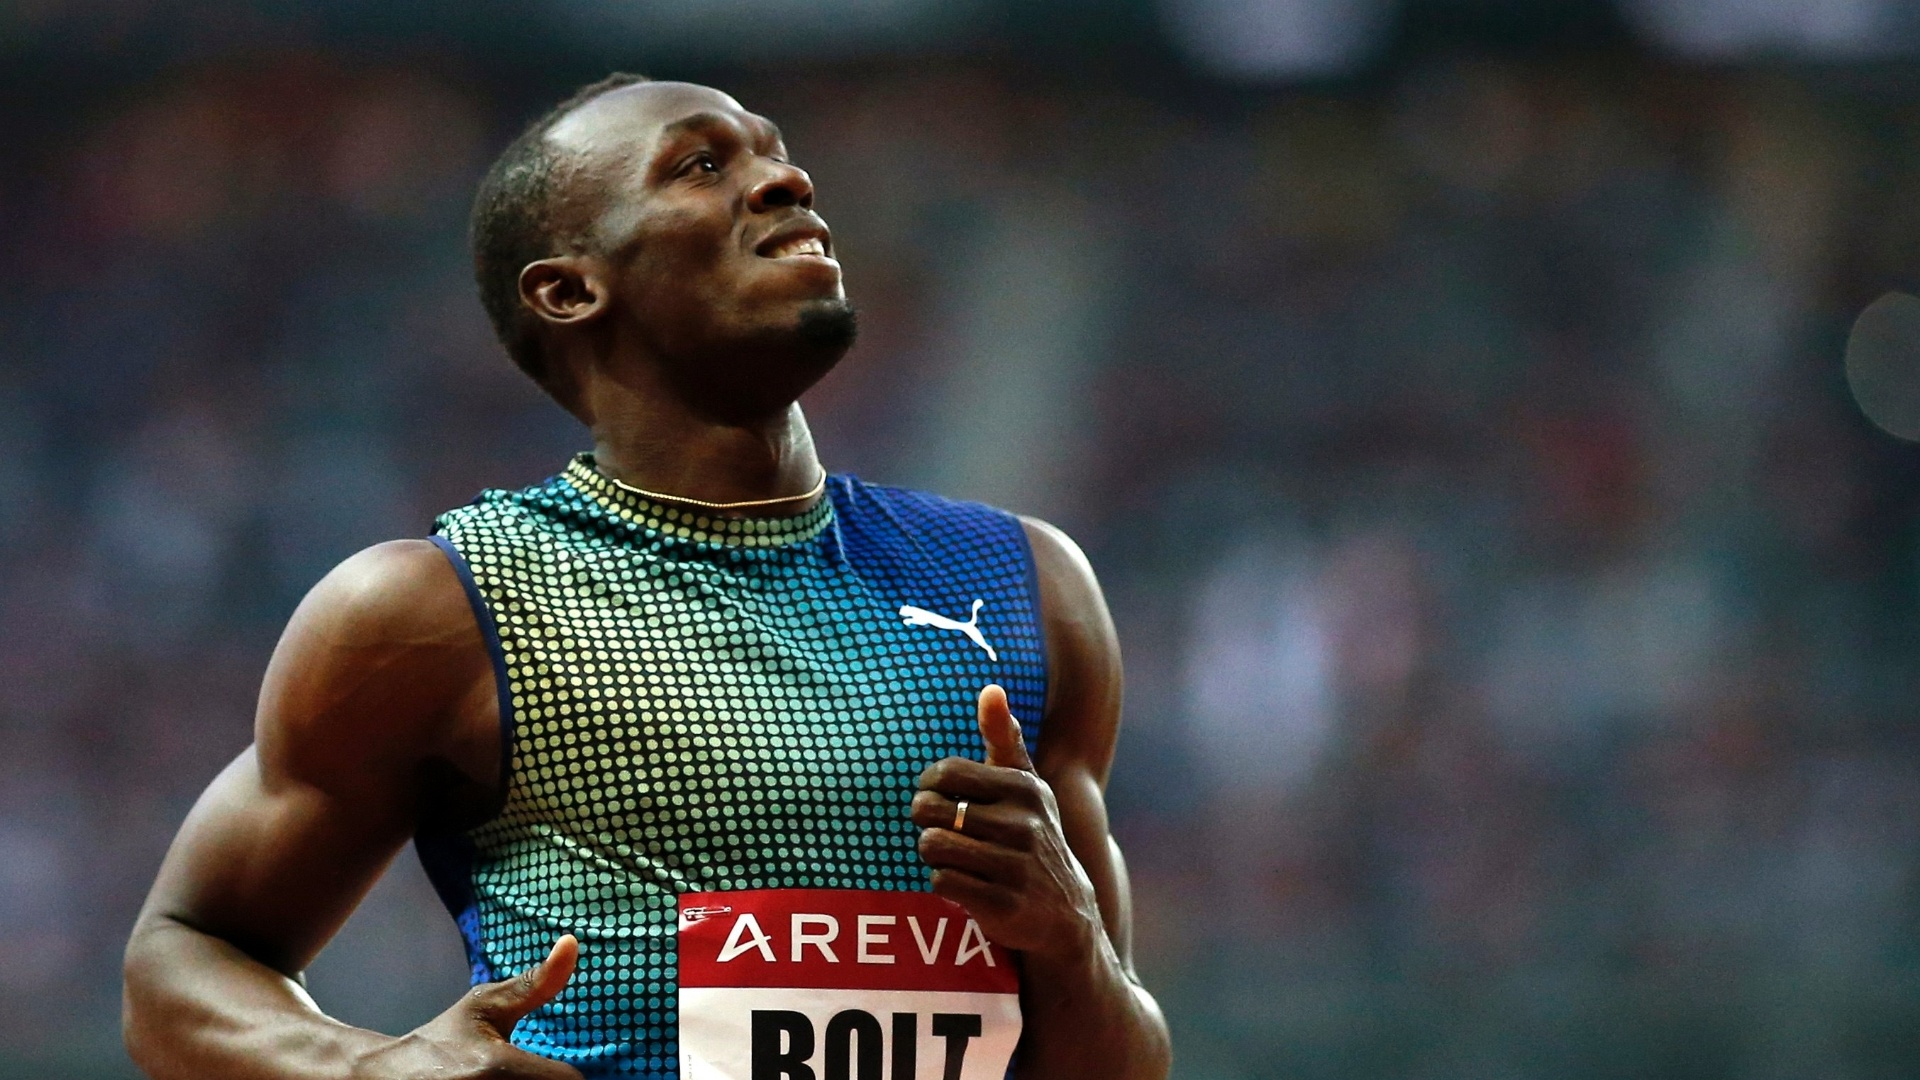 06.jun.2013 - Usain Bolt vence 200 m rasos em Paris